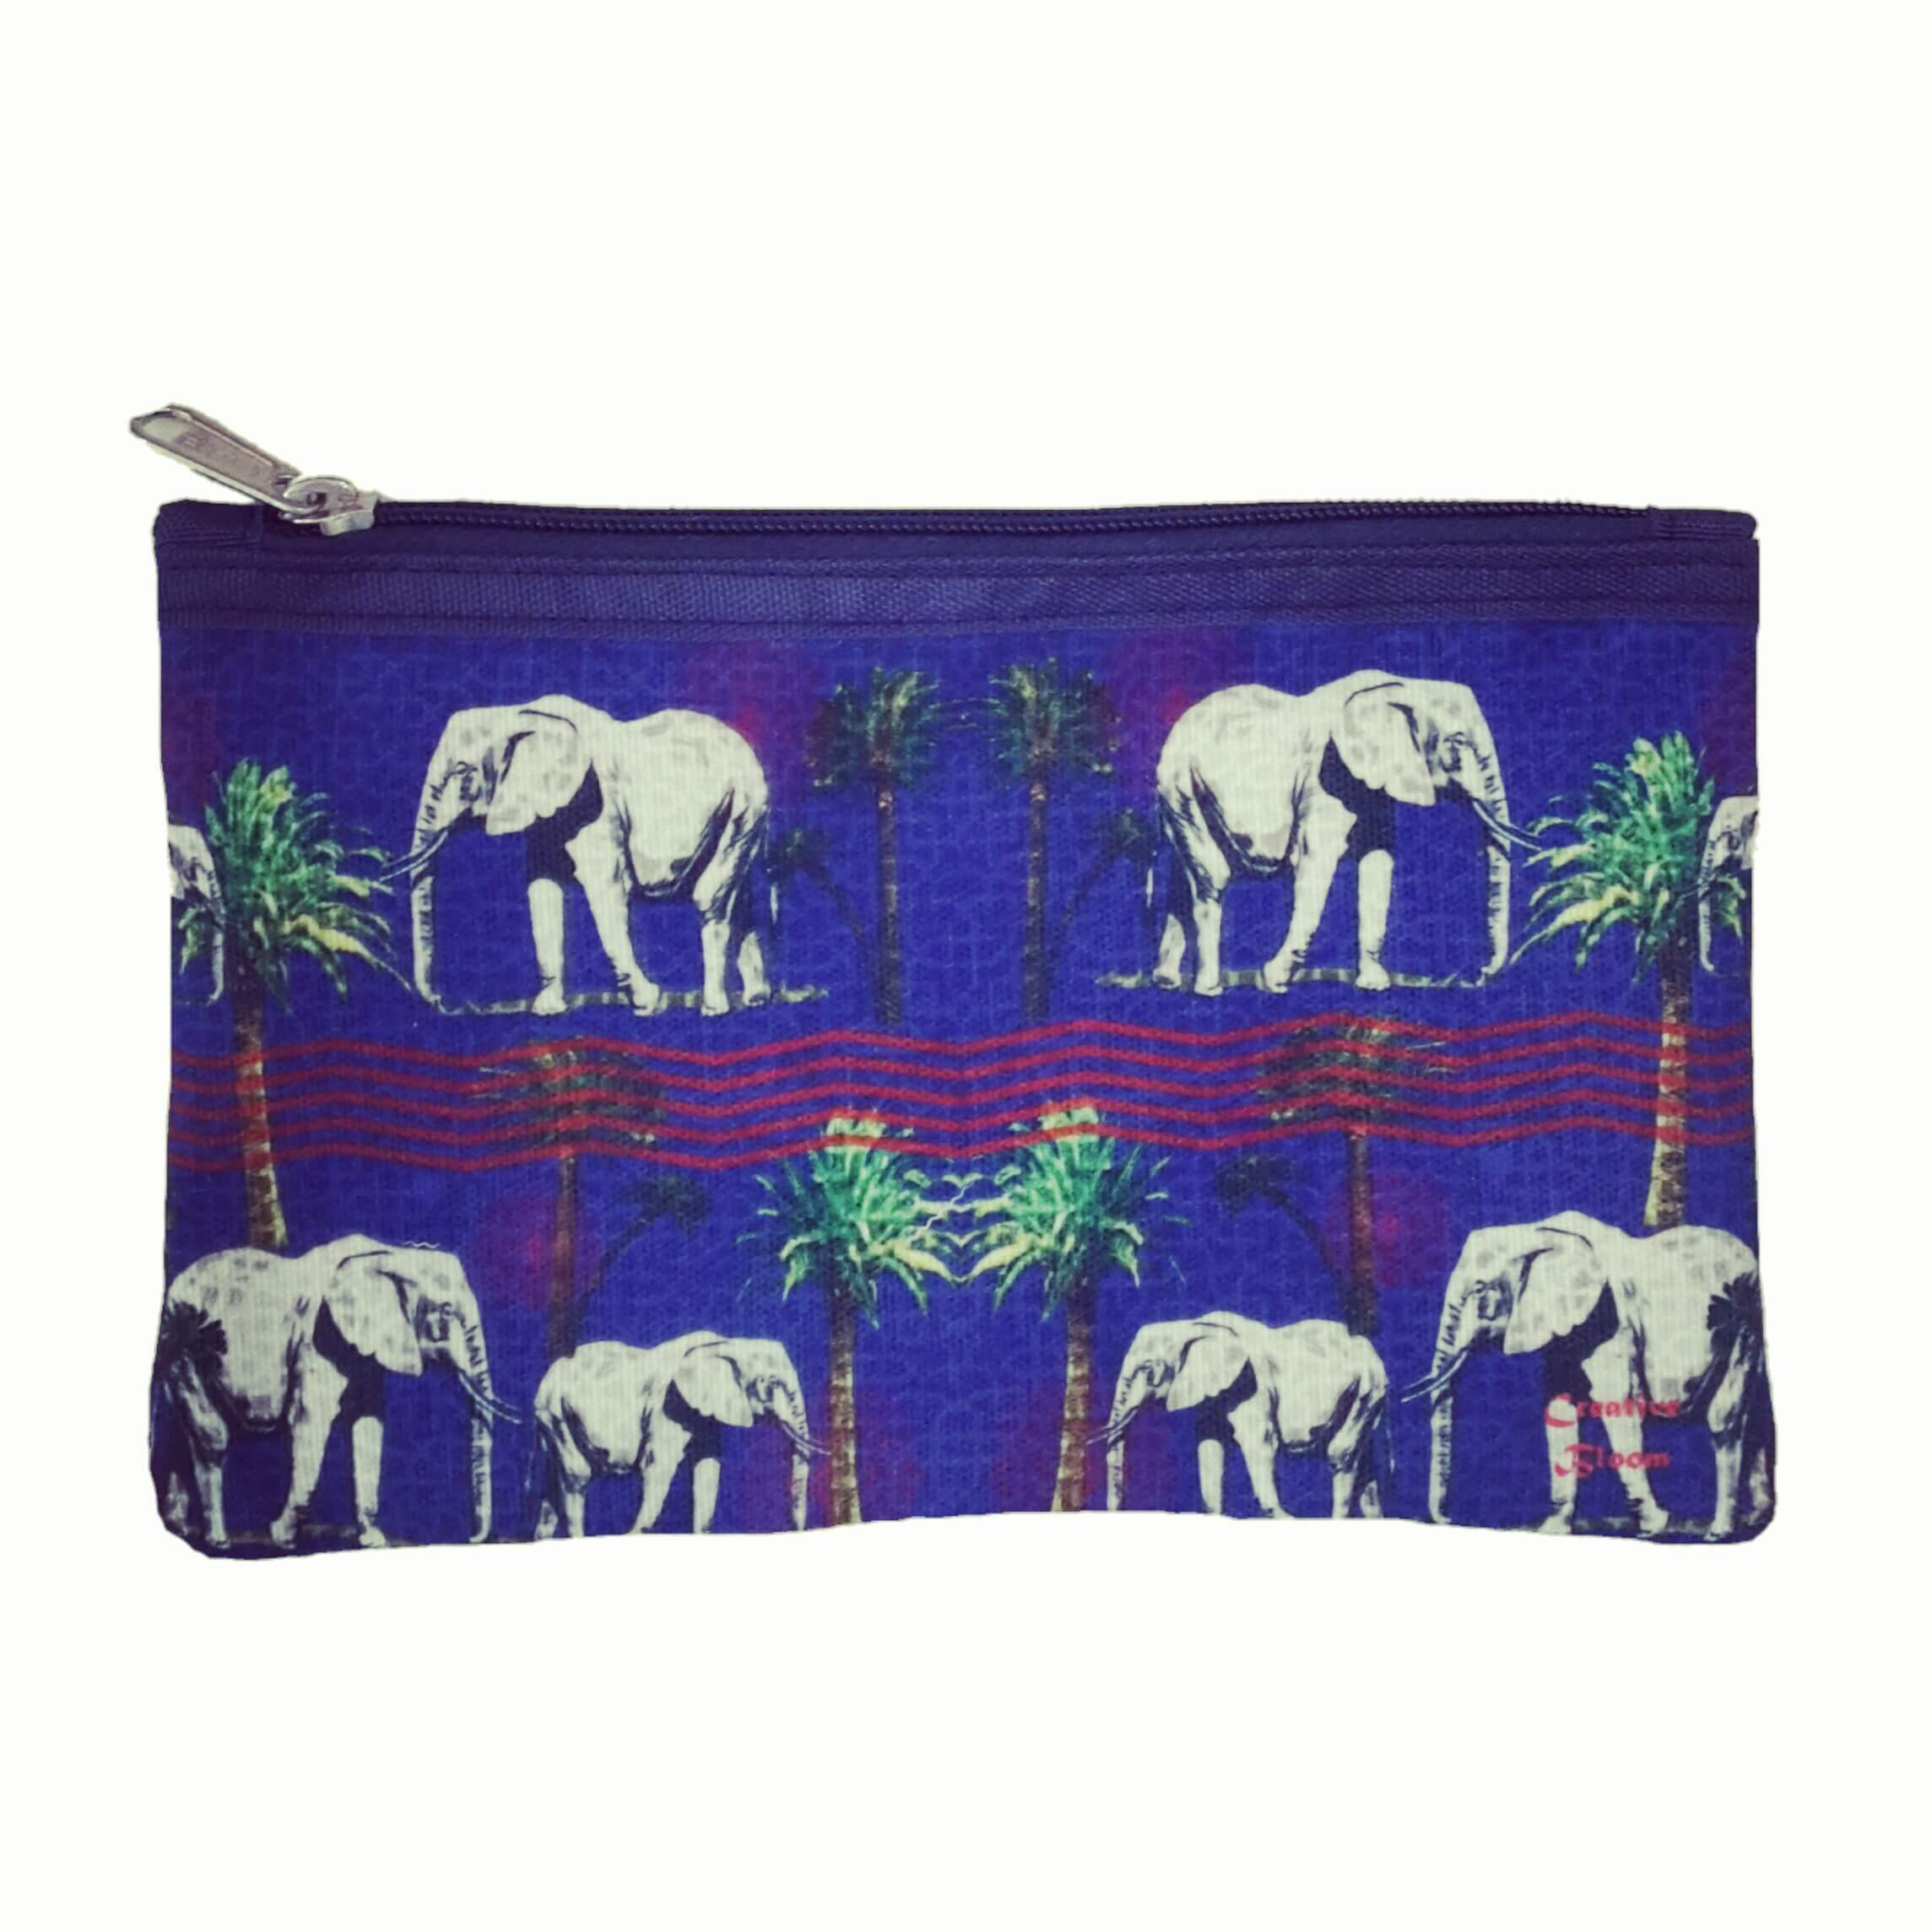 Elephants in the jungle Pouch